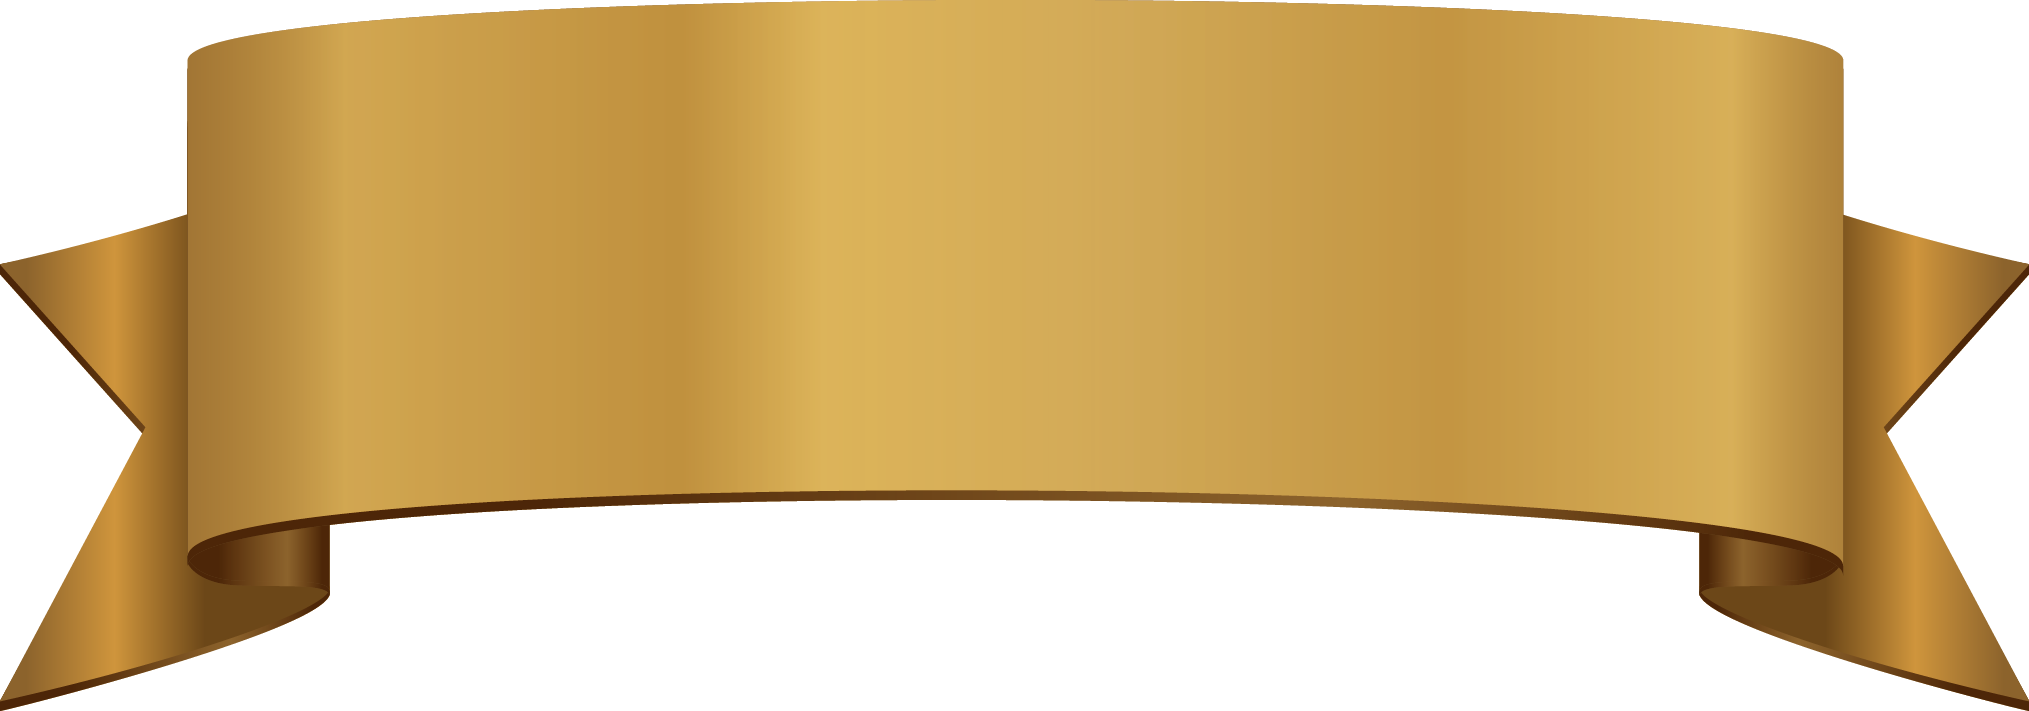 Golden ribbon png. Euclidean vector gold pattern